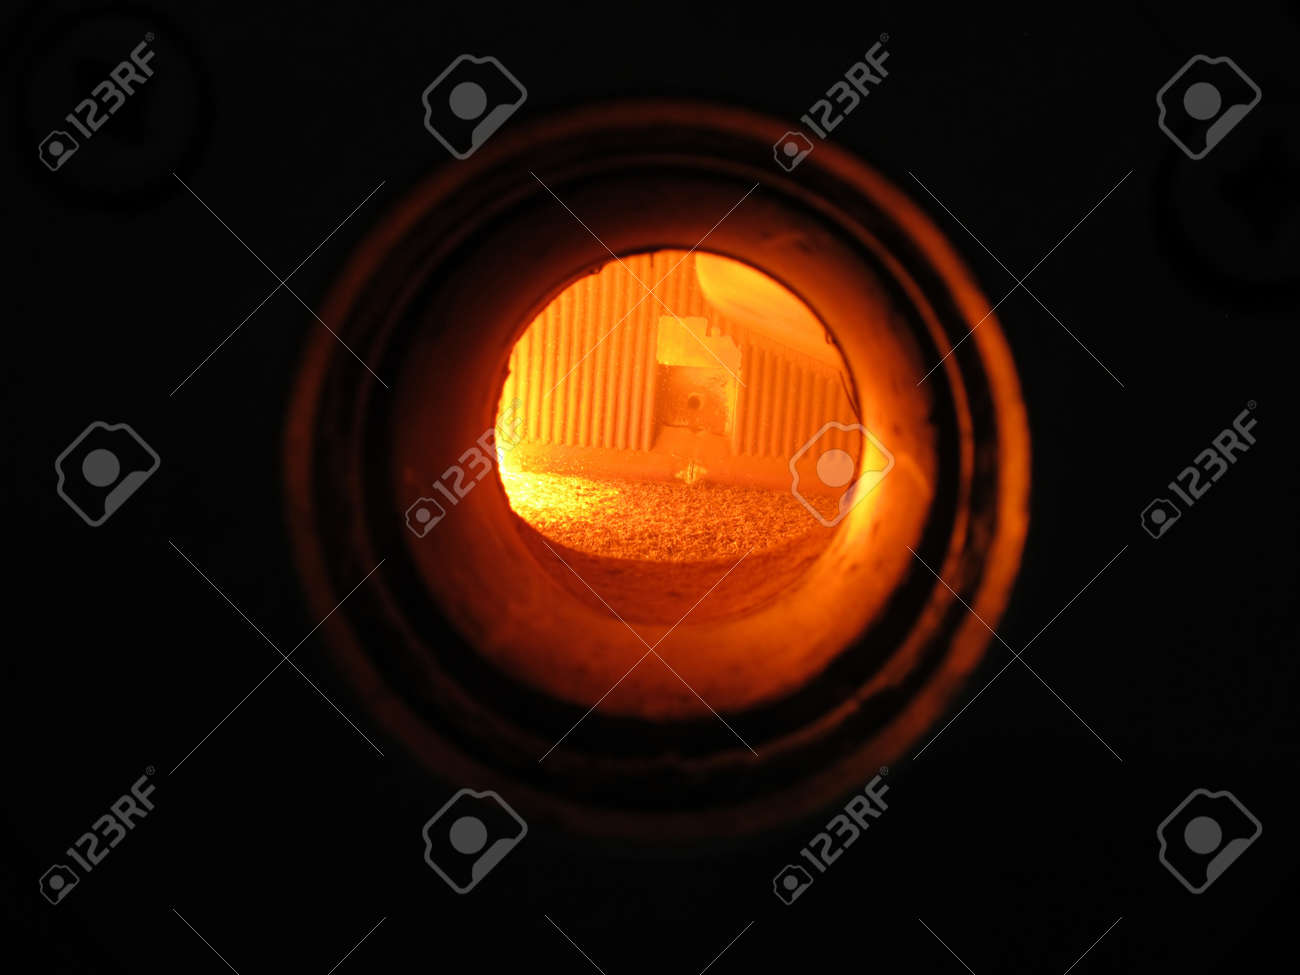 interior view grate combustion chamber through a window Stock Photo - 16891435